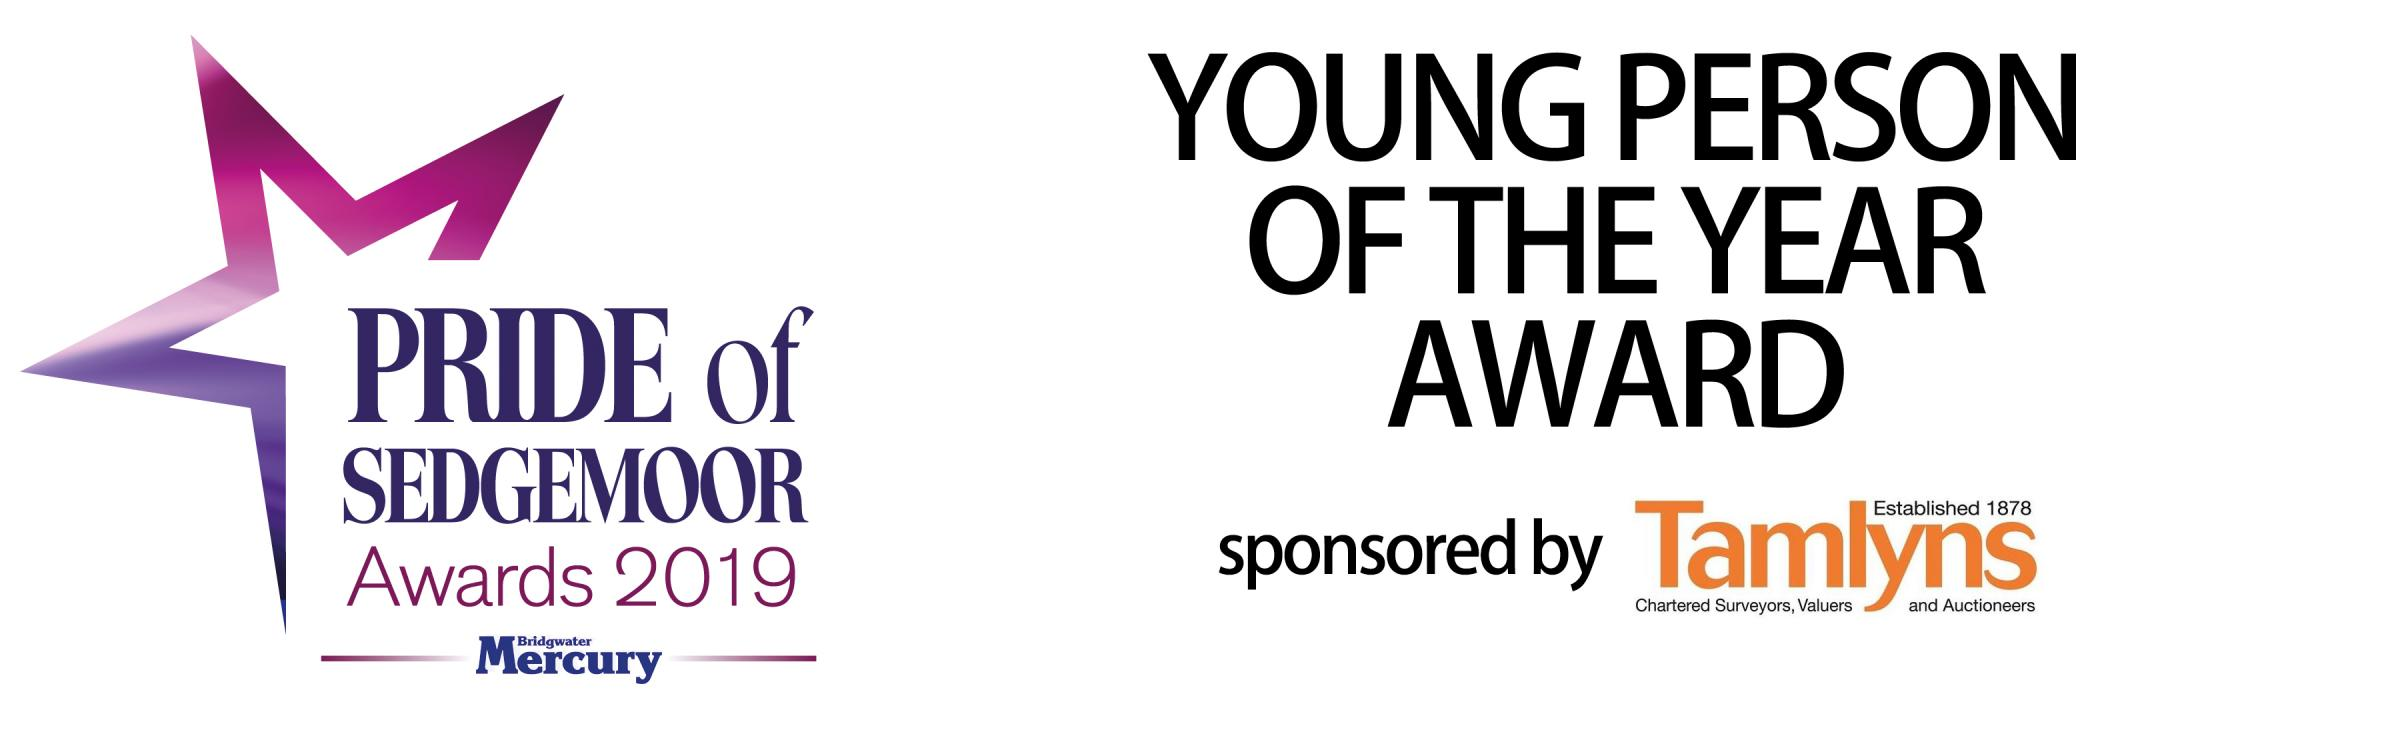 Bridgwater Mercury: Pride of Sedgemoor Awards 2019: Young Person of the Year